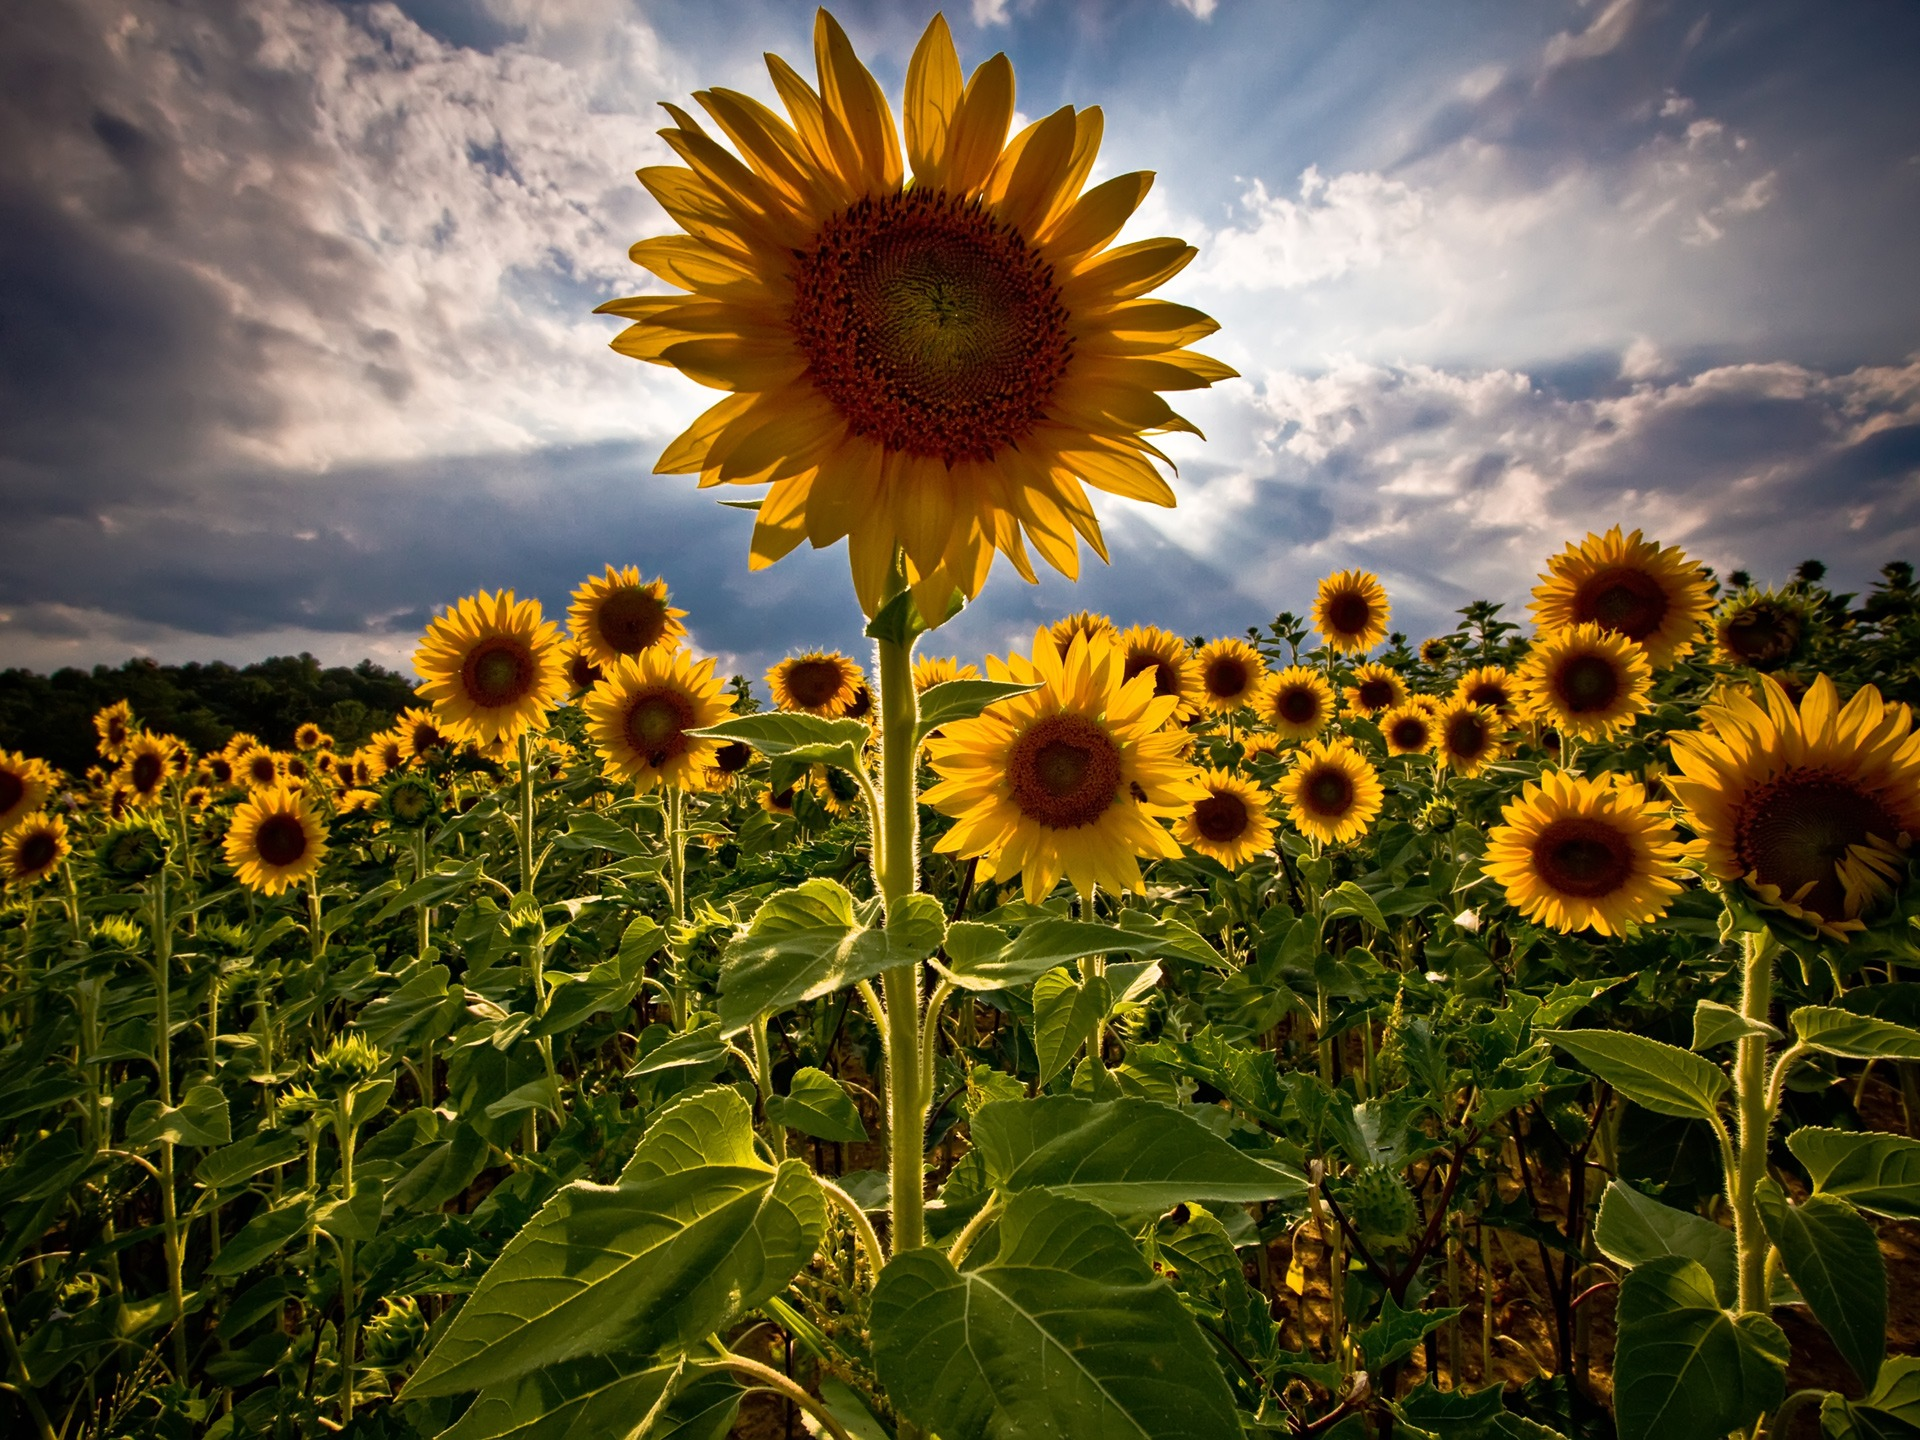 Sunflowers Wallpaper Flowers Nature Wallpapers